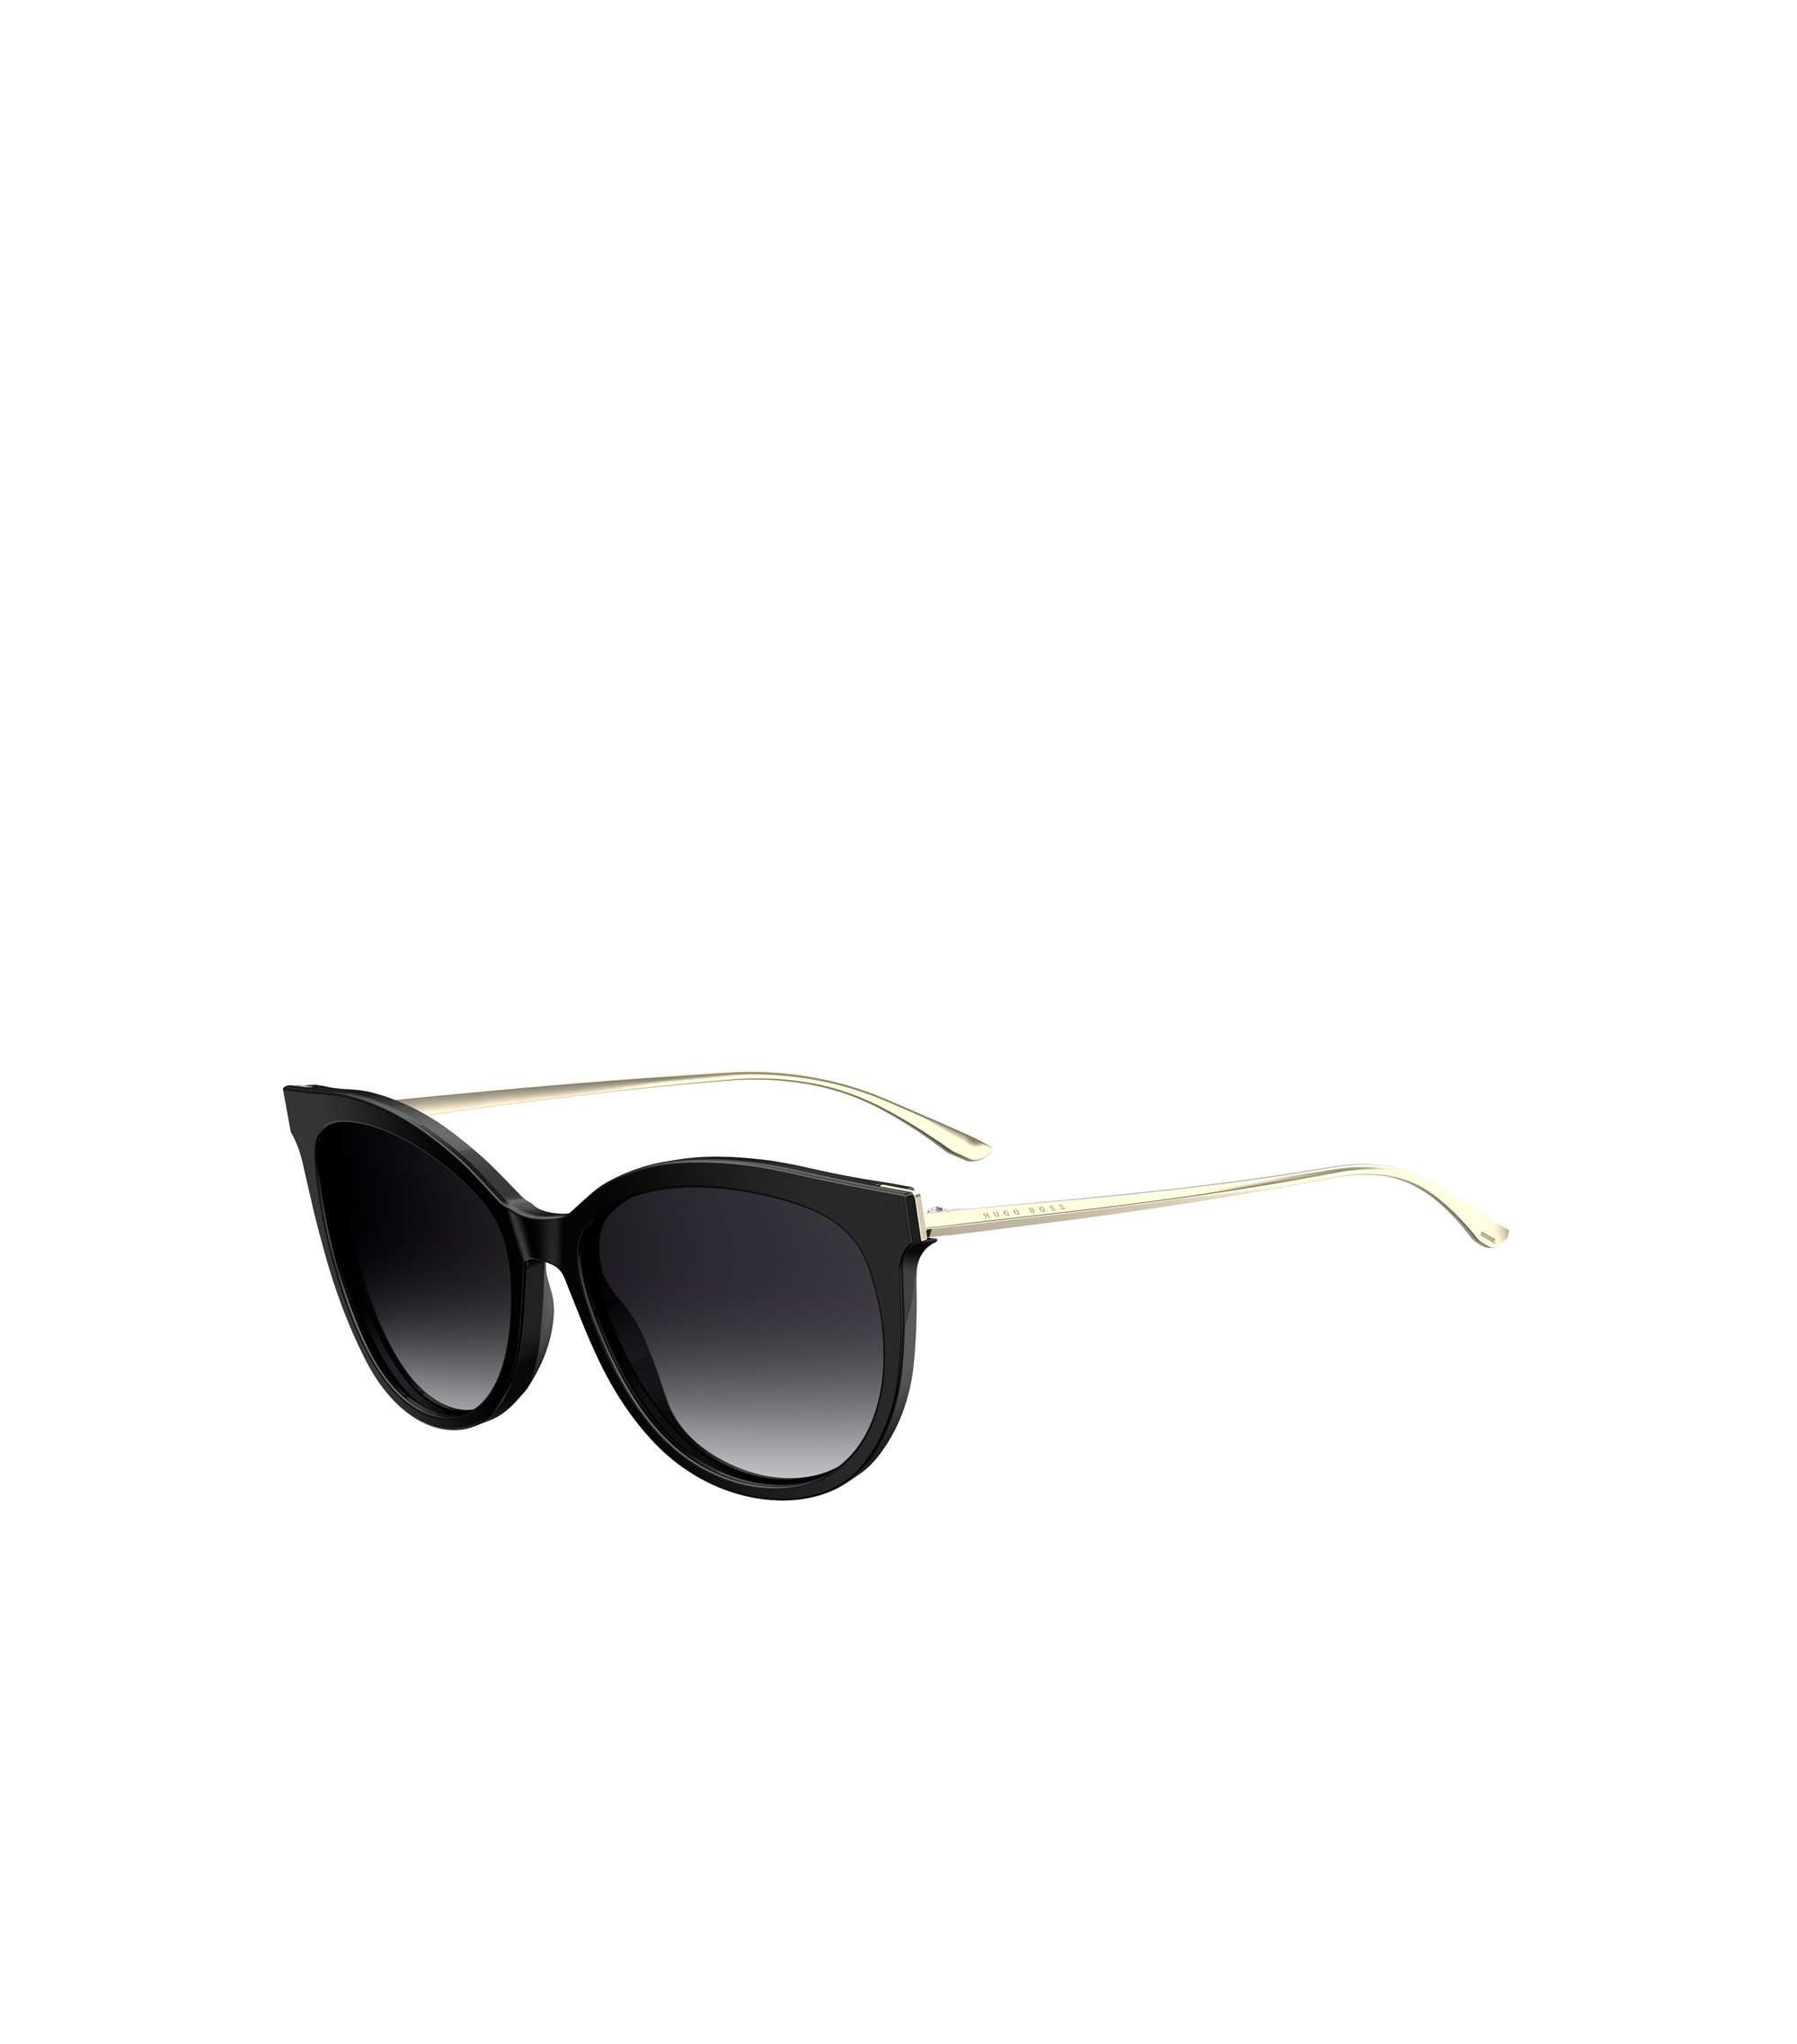 Black Cat-eye Sunglasses | BOSS 0892S, Assorted-Pre-Pack